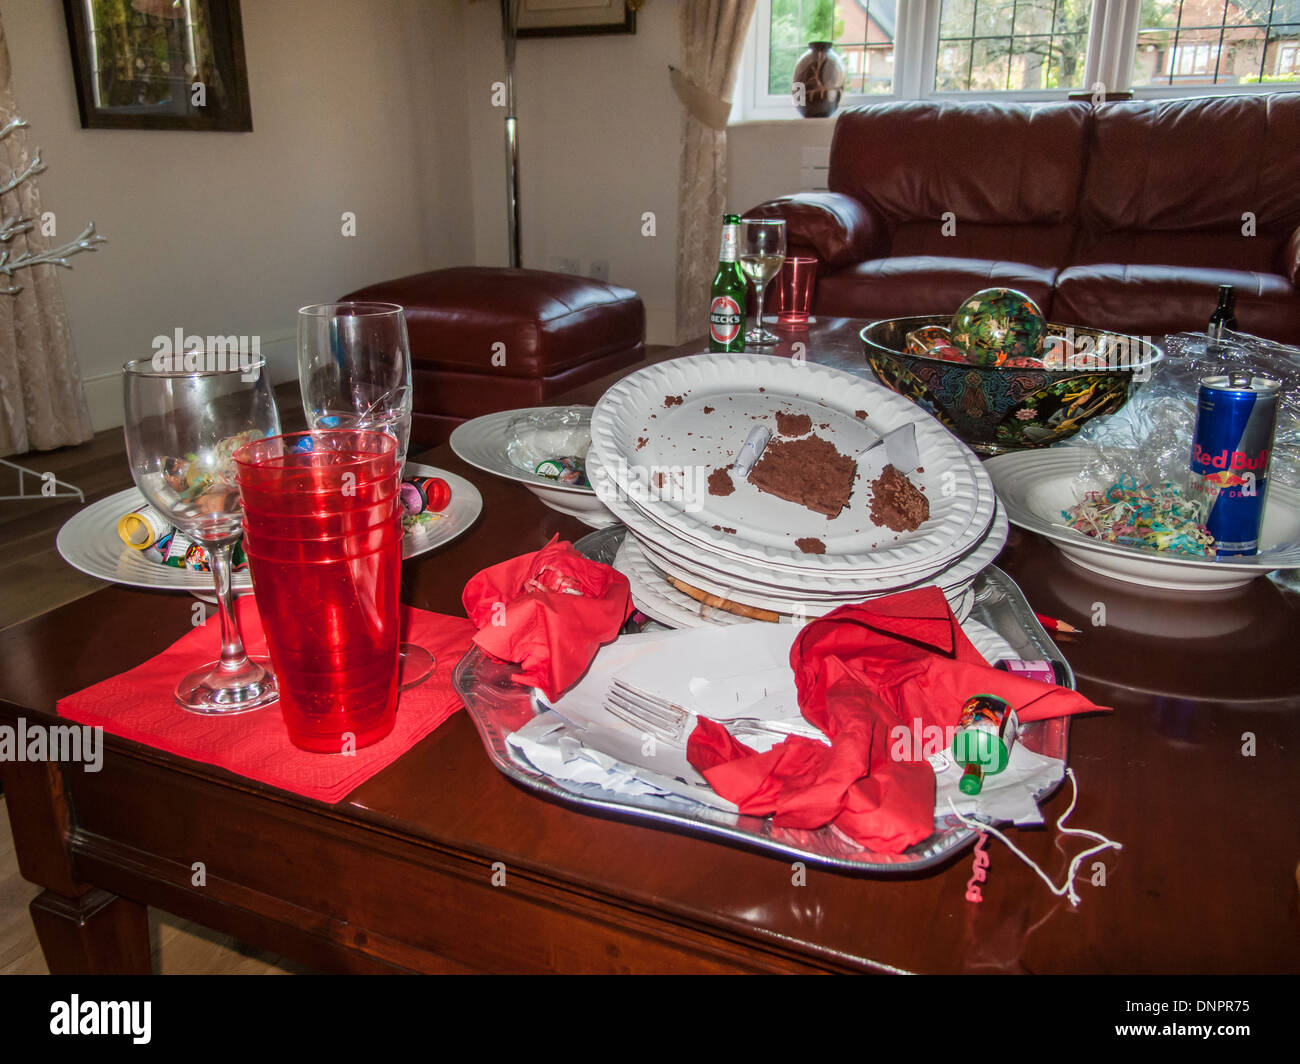 Mess after a festive season party - dirty paper plates, plastic cups, discarded napkins, empty glasses, drink can and bottle - Stock Image